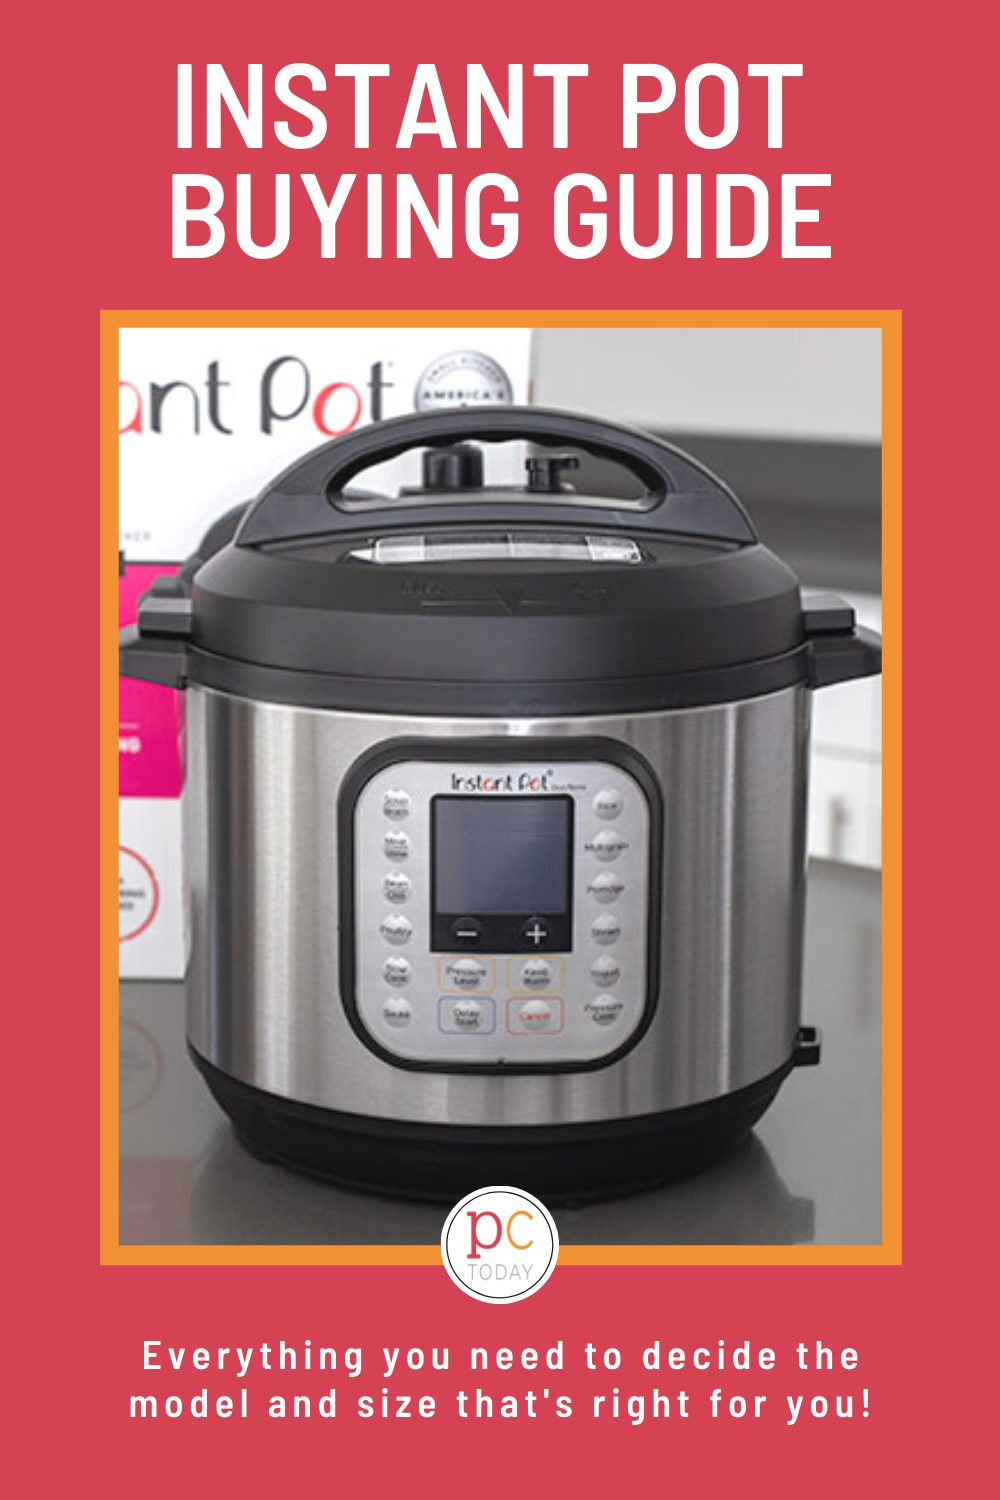 pinterest image on a pink background promoting our Instant Pot buying guide, featuring a duo nova on a gray countertop via @PressureCook2da